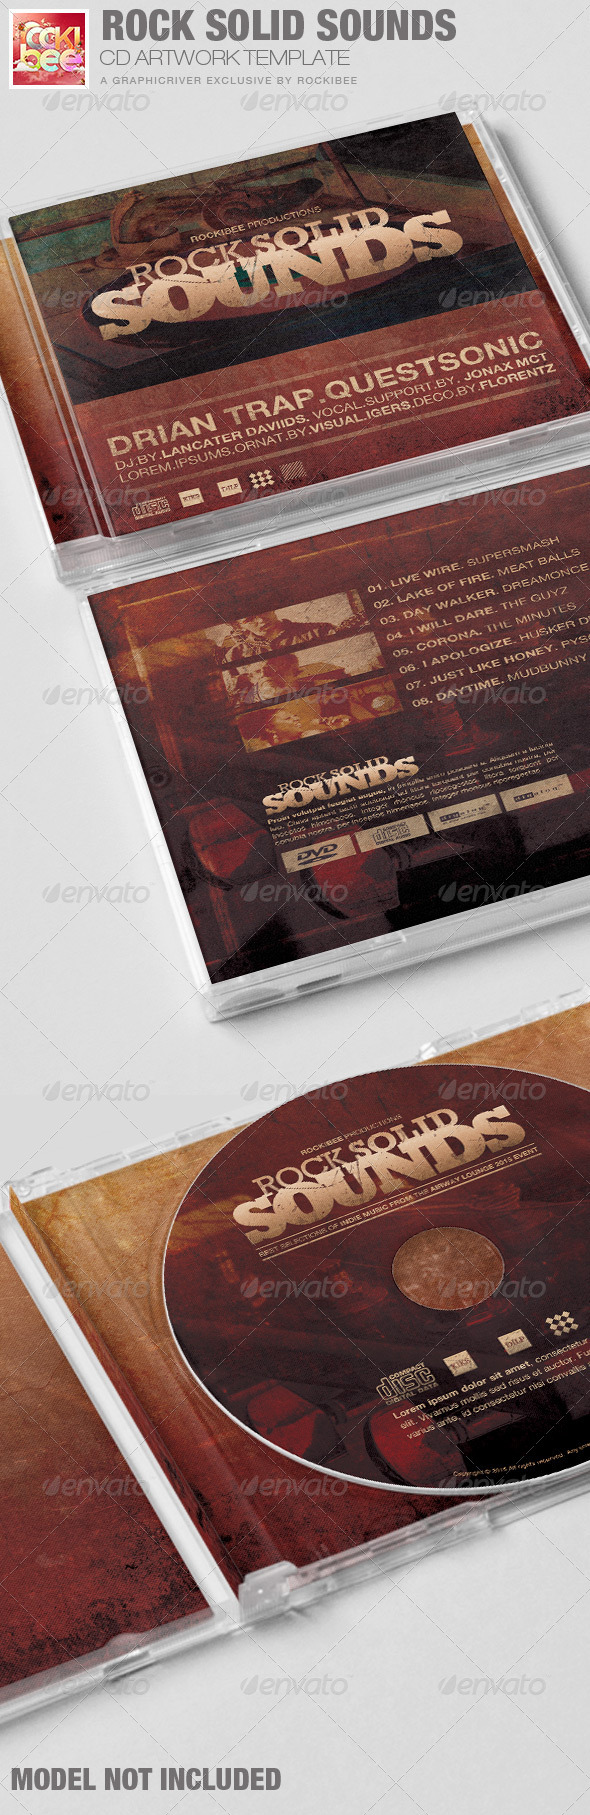 GraphicRiver Rock Solid Sounds CD Artwork Template 6705651